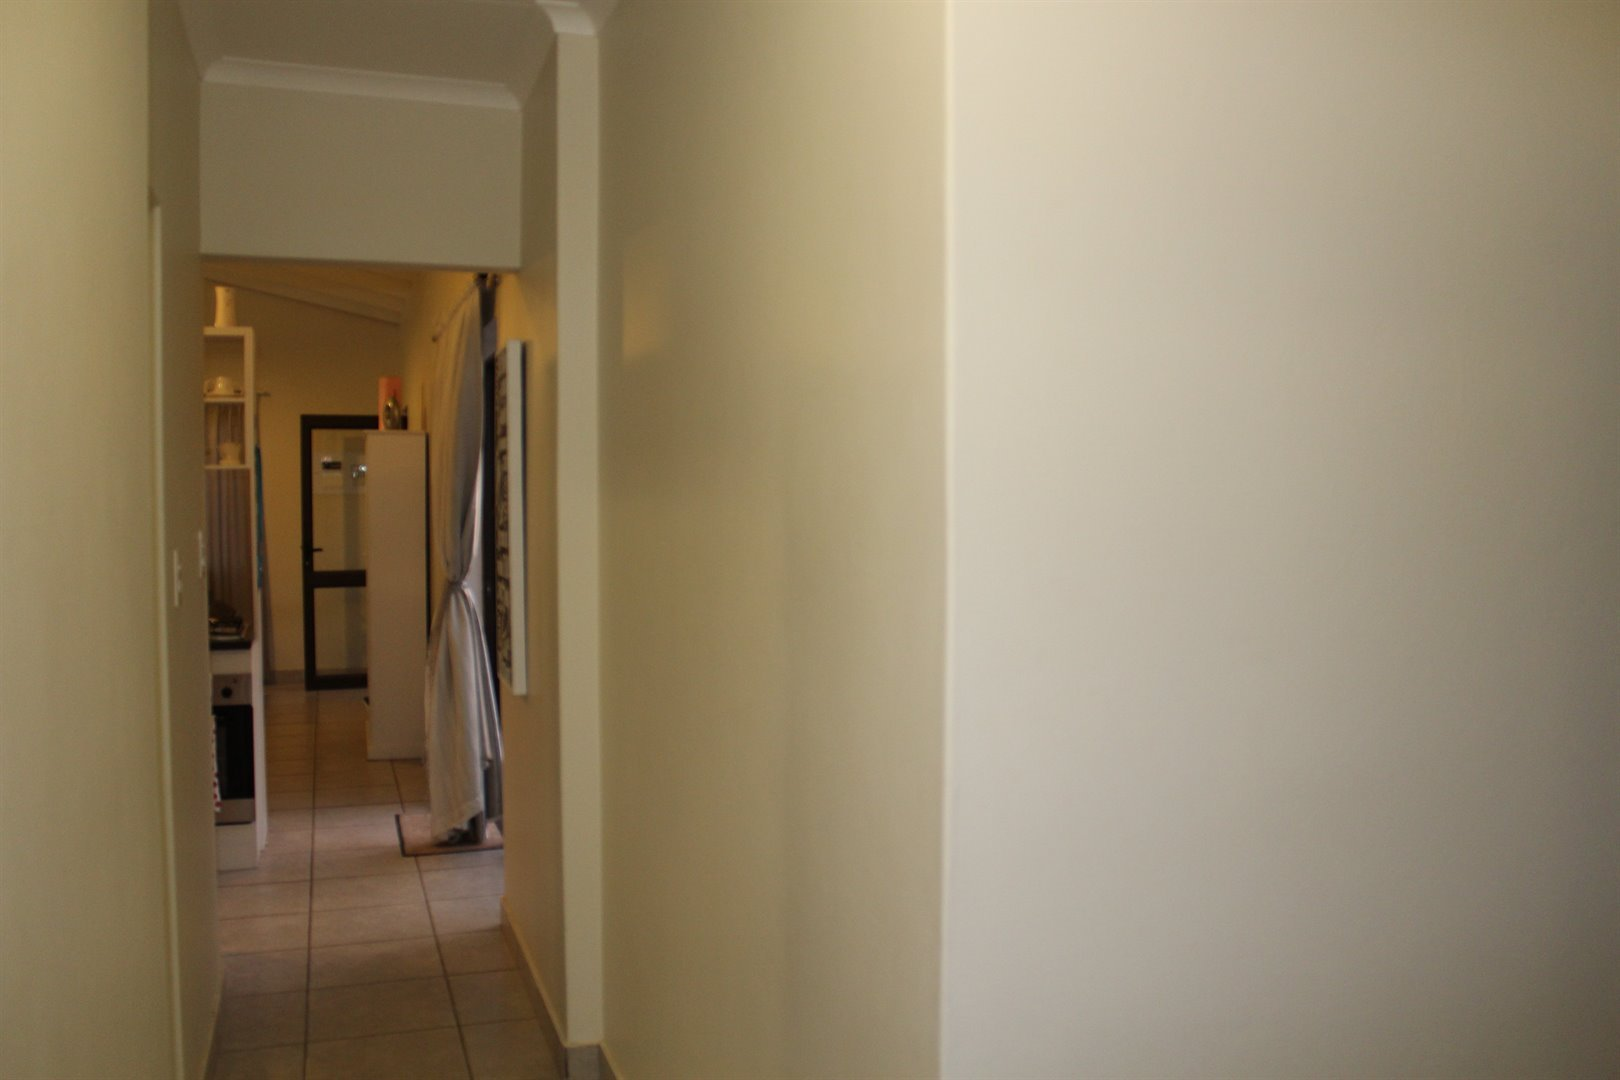 Potchefstroom Central property for sale. Ref No: 13531851. Picture no 8